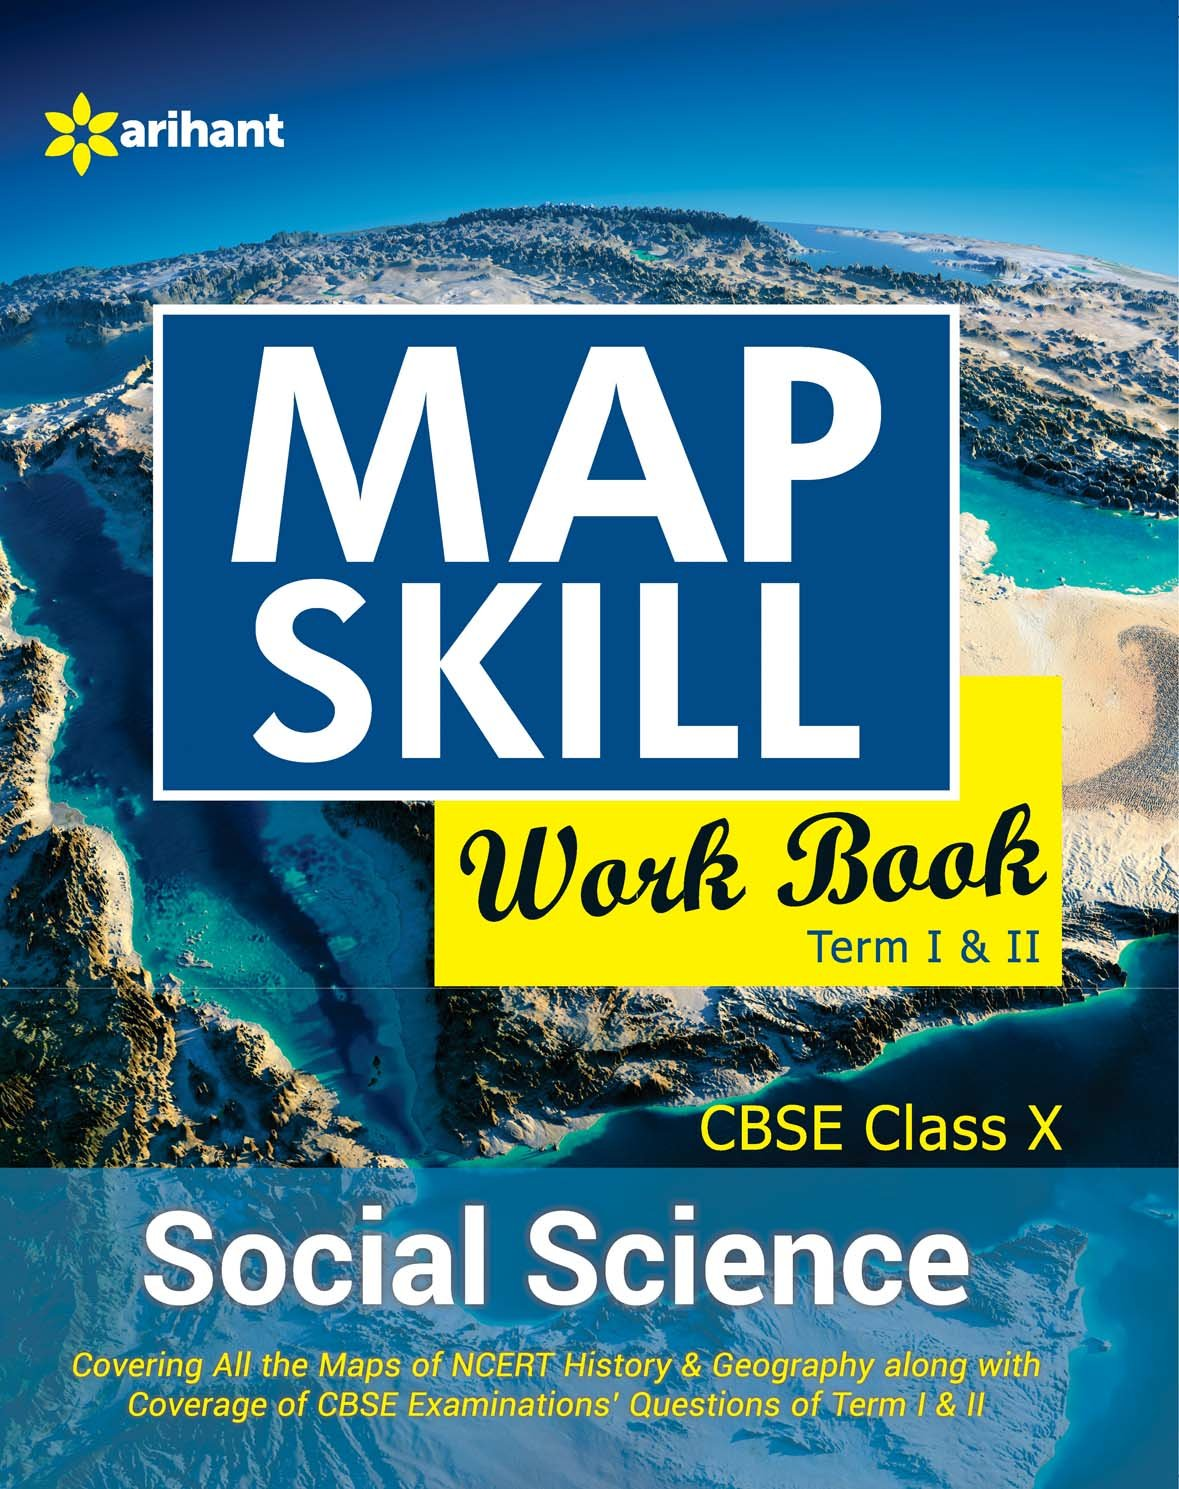 Map Skill WorkBook CBSE Social science 10th Term I & II: Amazon.in ...